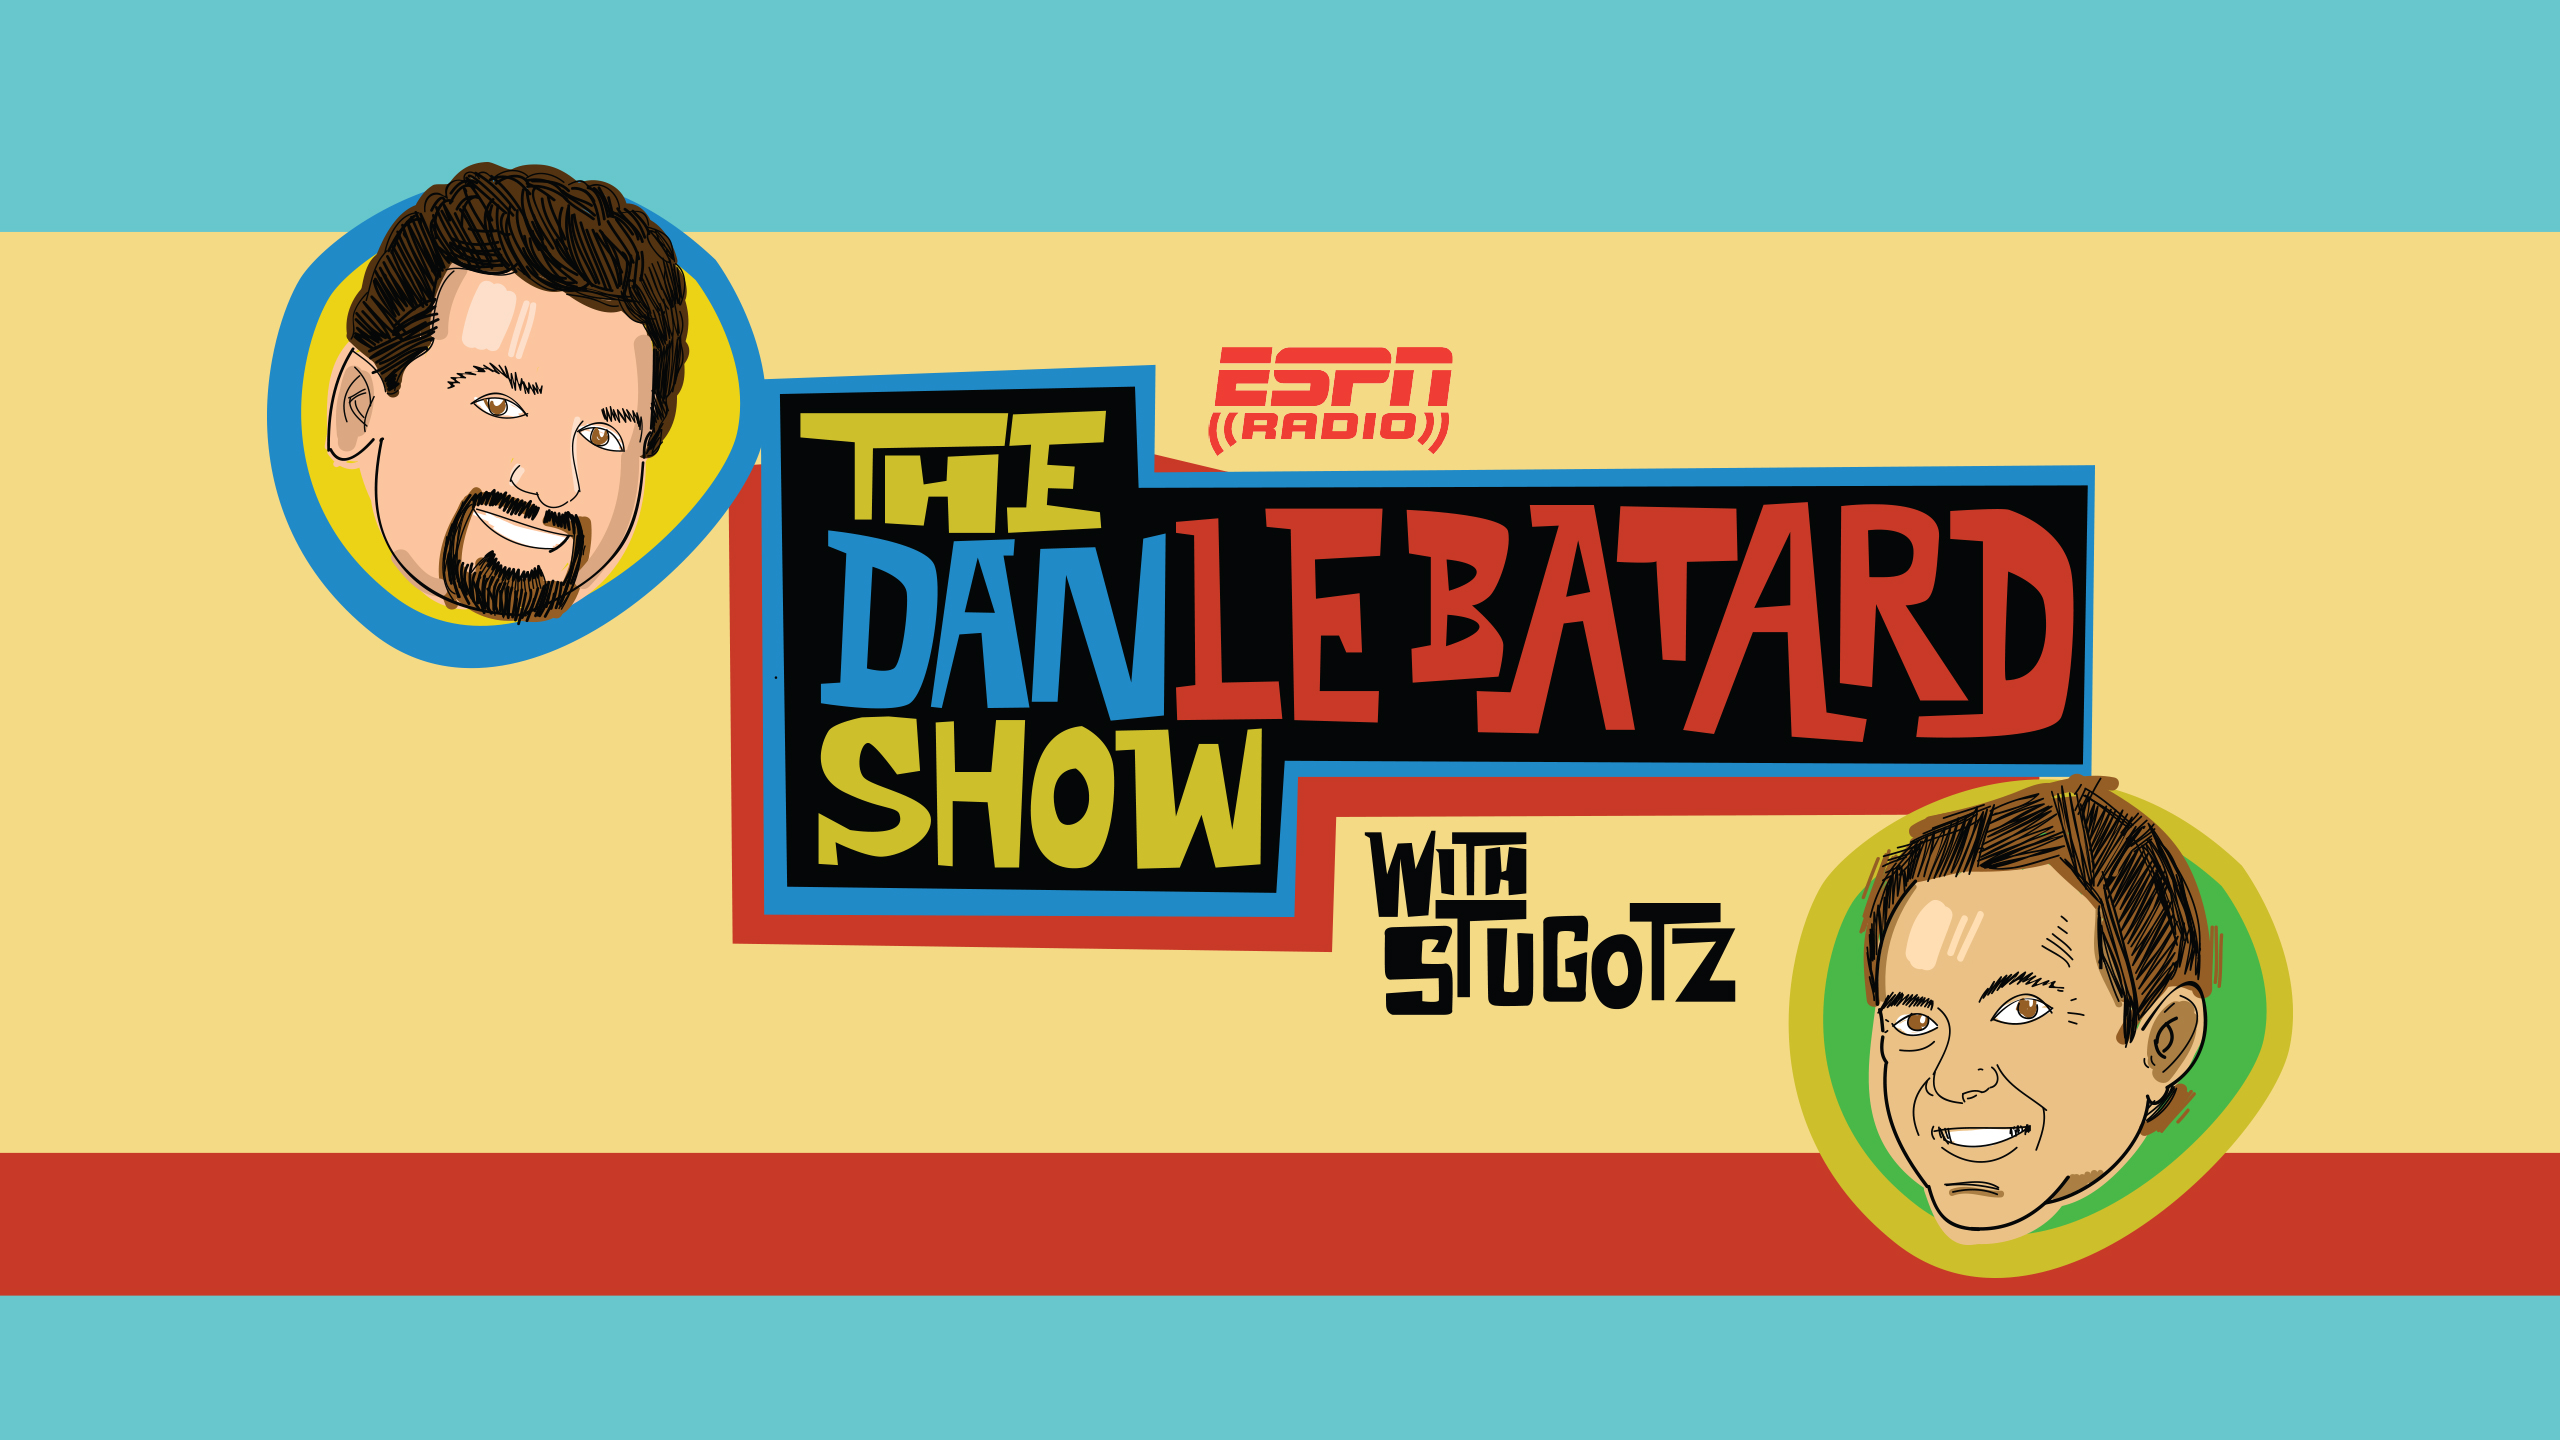 Mon, 3/25 - The Dan Le Batard Show with Stugotz Presented by Progressive